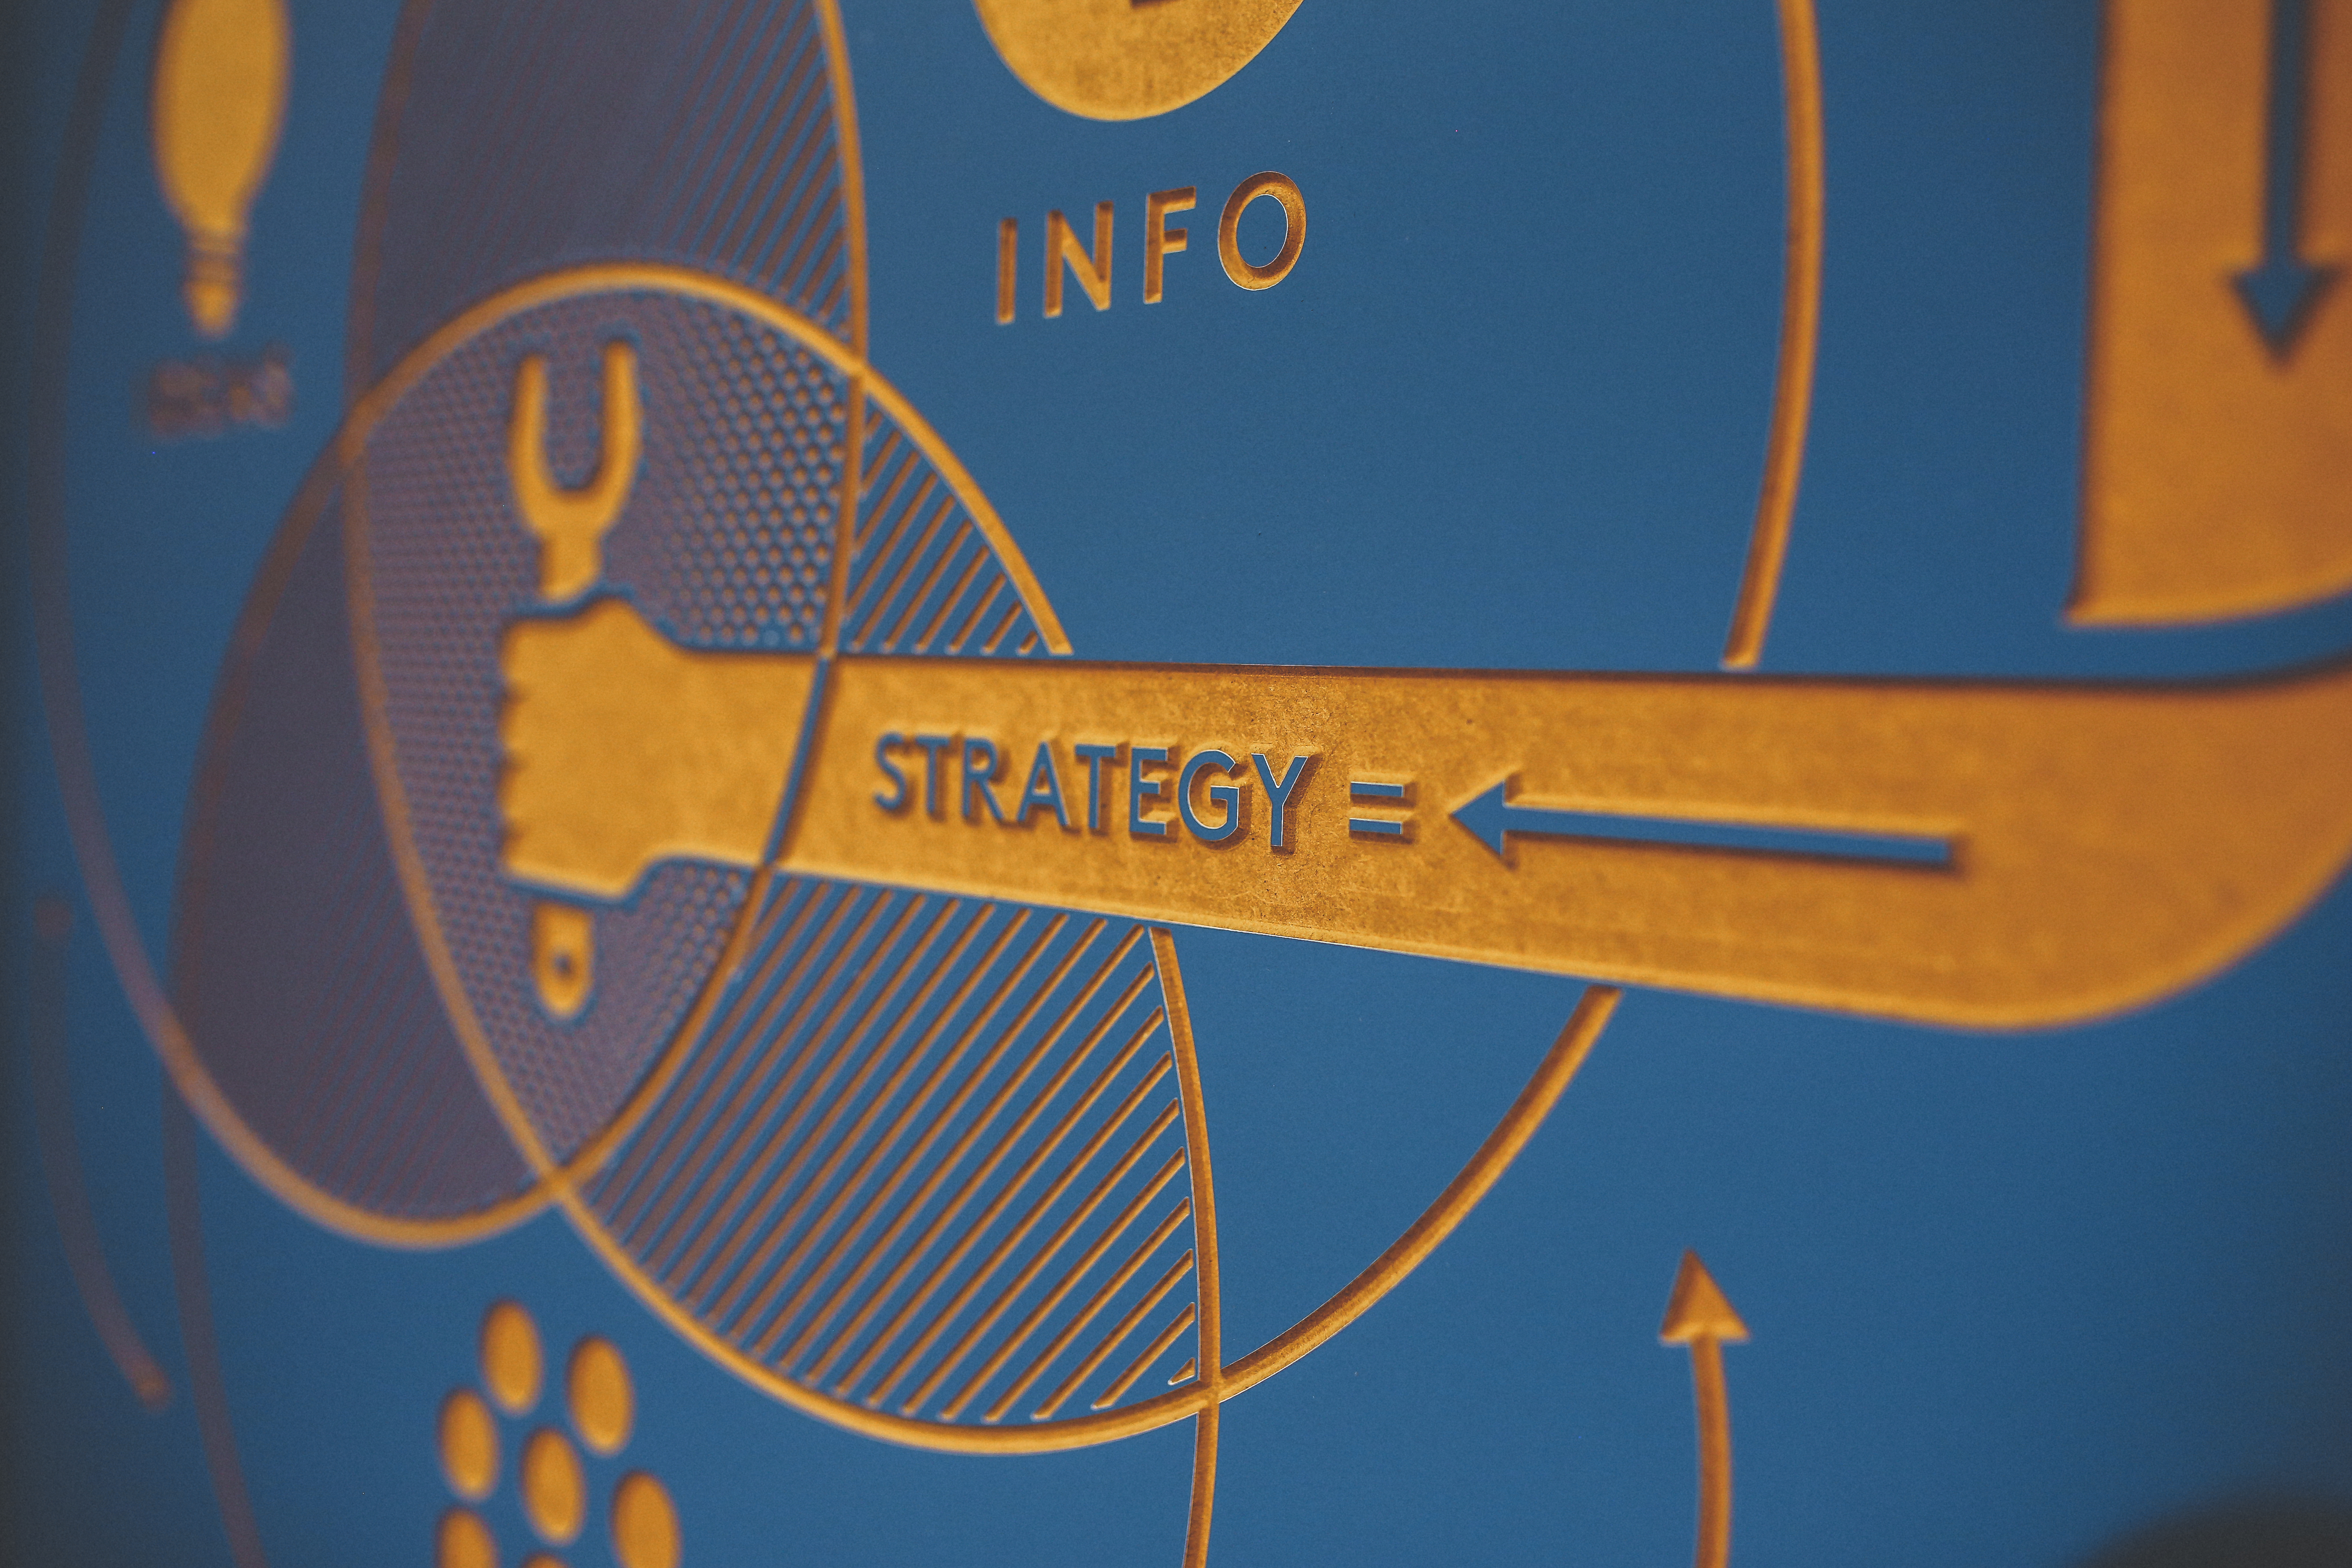 Closeup of mural depicting SEO strategy